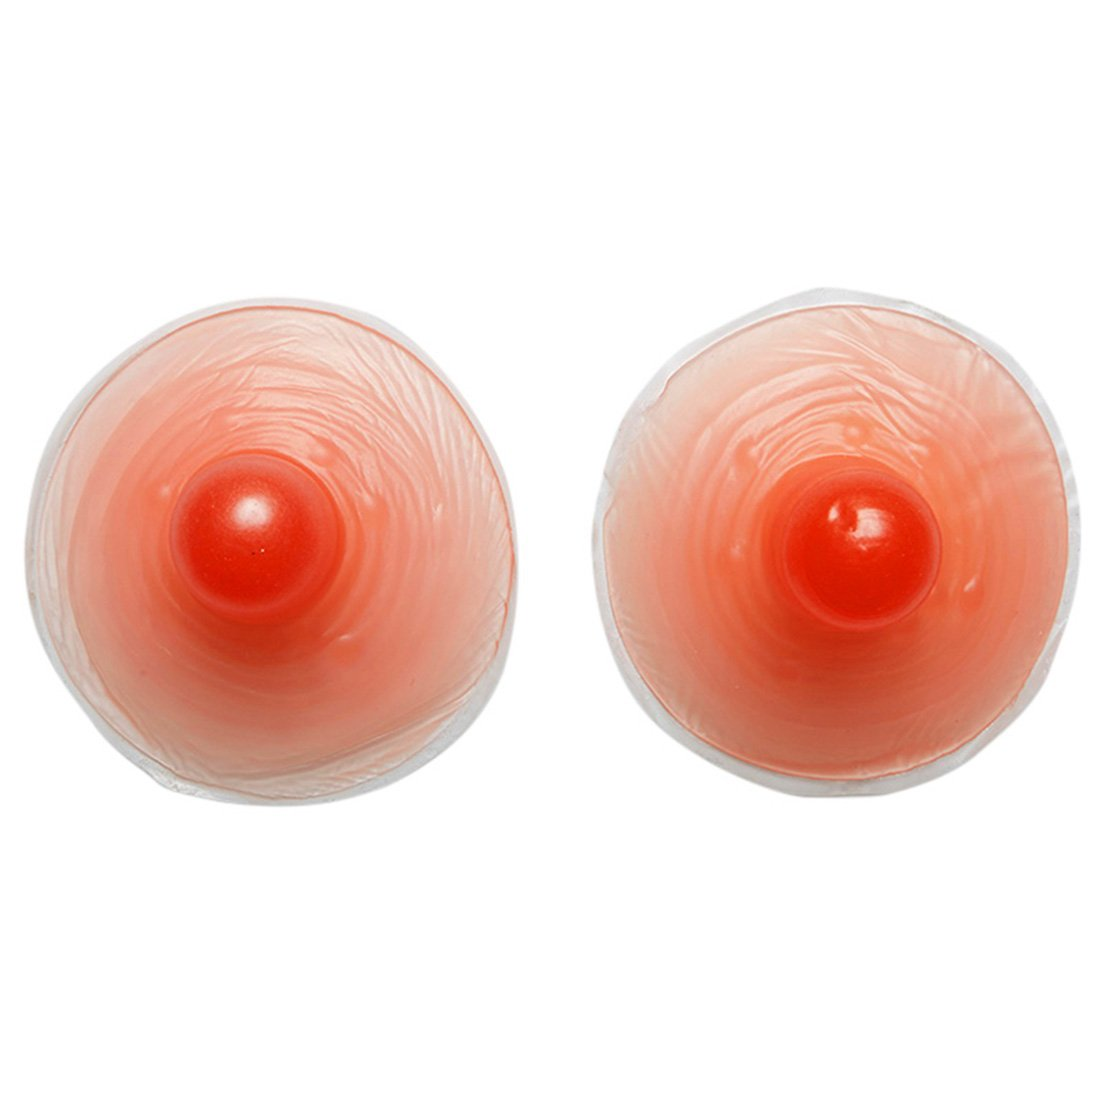 Hengfey Silicone Nipple Breast Covers Forms Natural Attachable (Red,one pair) YV0032/HFCA